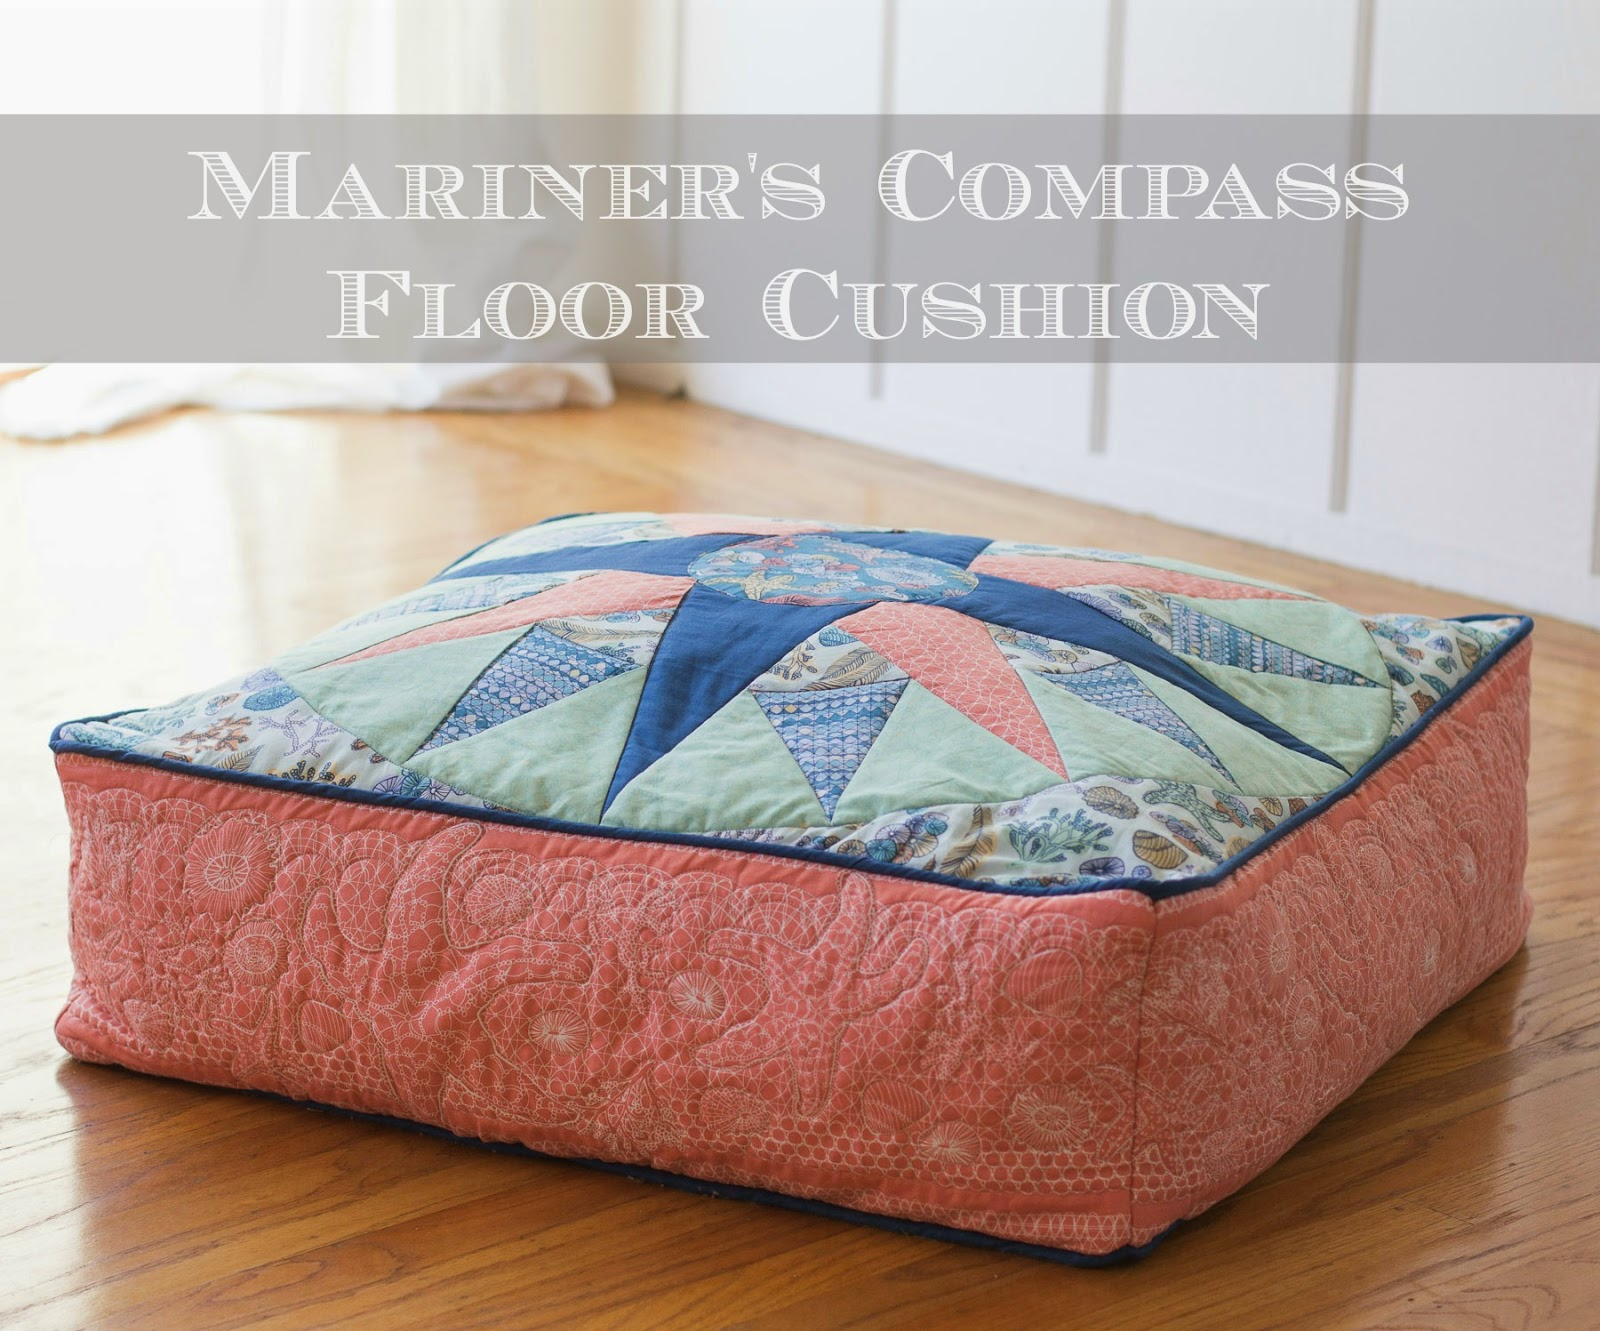 cushion and floors bath giant feather school free product with down inch pillow overstock bedding back floor today shipping to